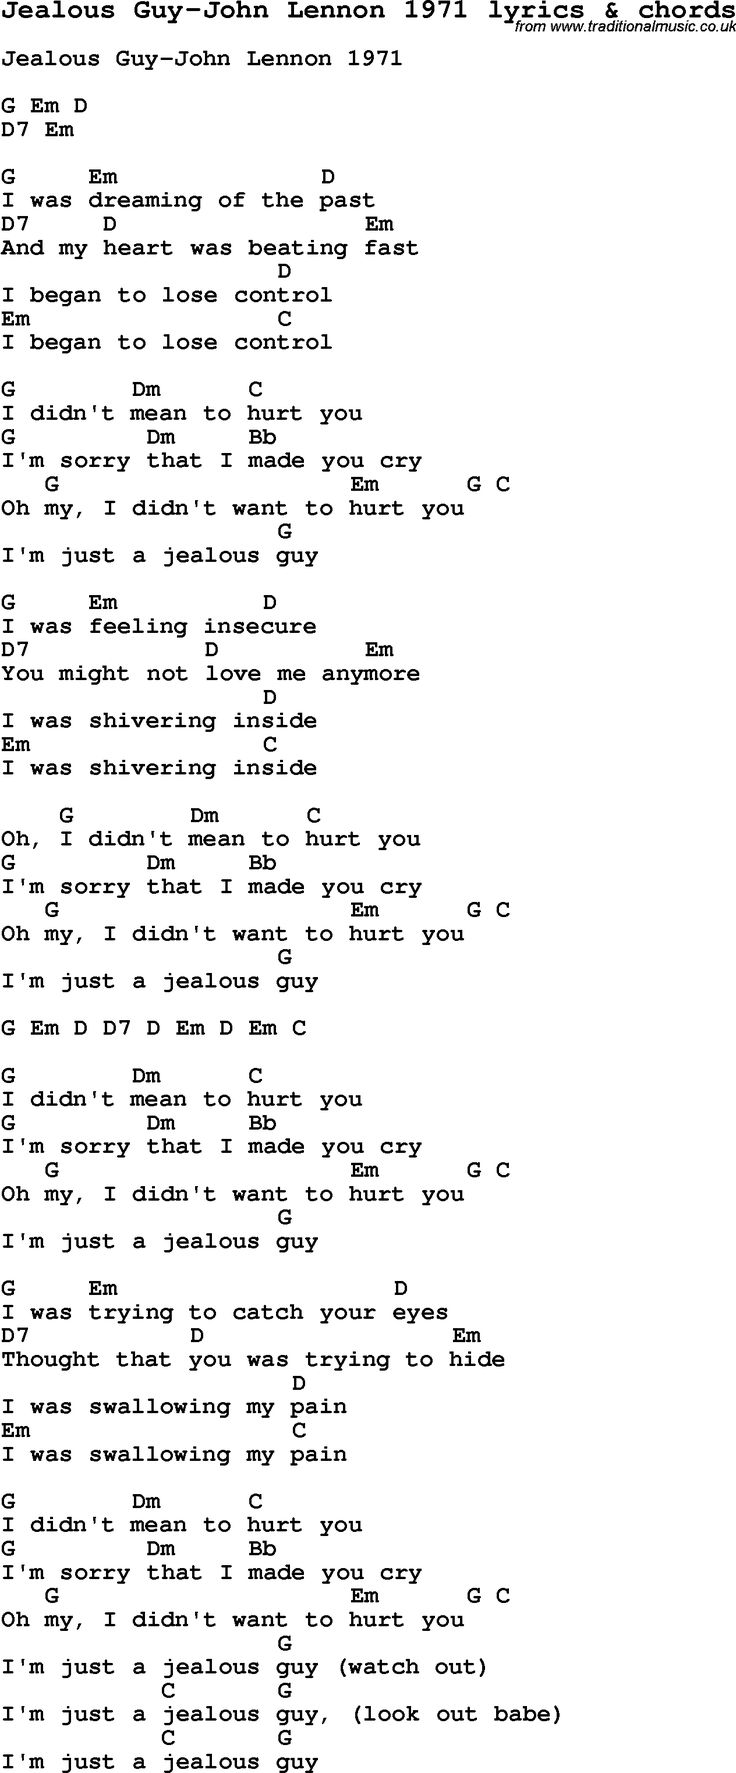 The 25 best easy guitar chords ideas on pinterest easy guitar love song lyrics for jealous guy john lennon 1971 with chords for ukulele hexwebz Gallery